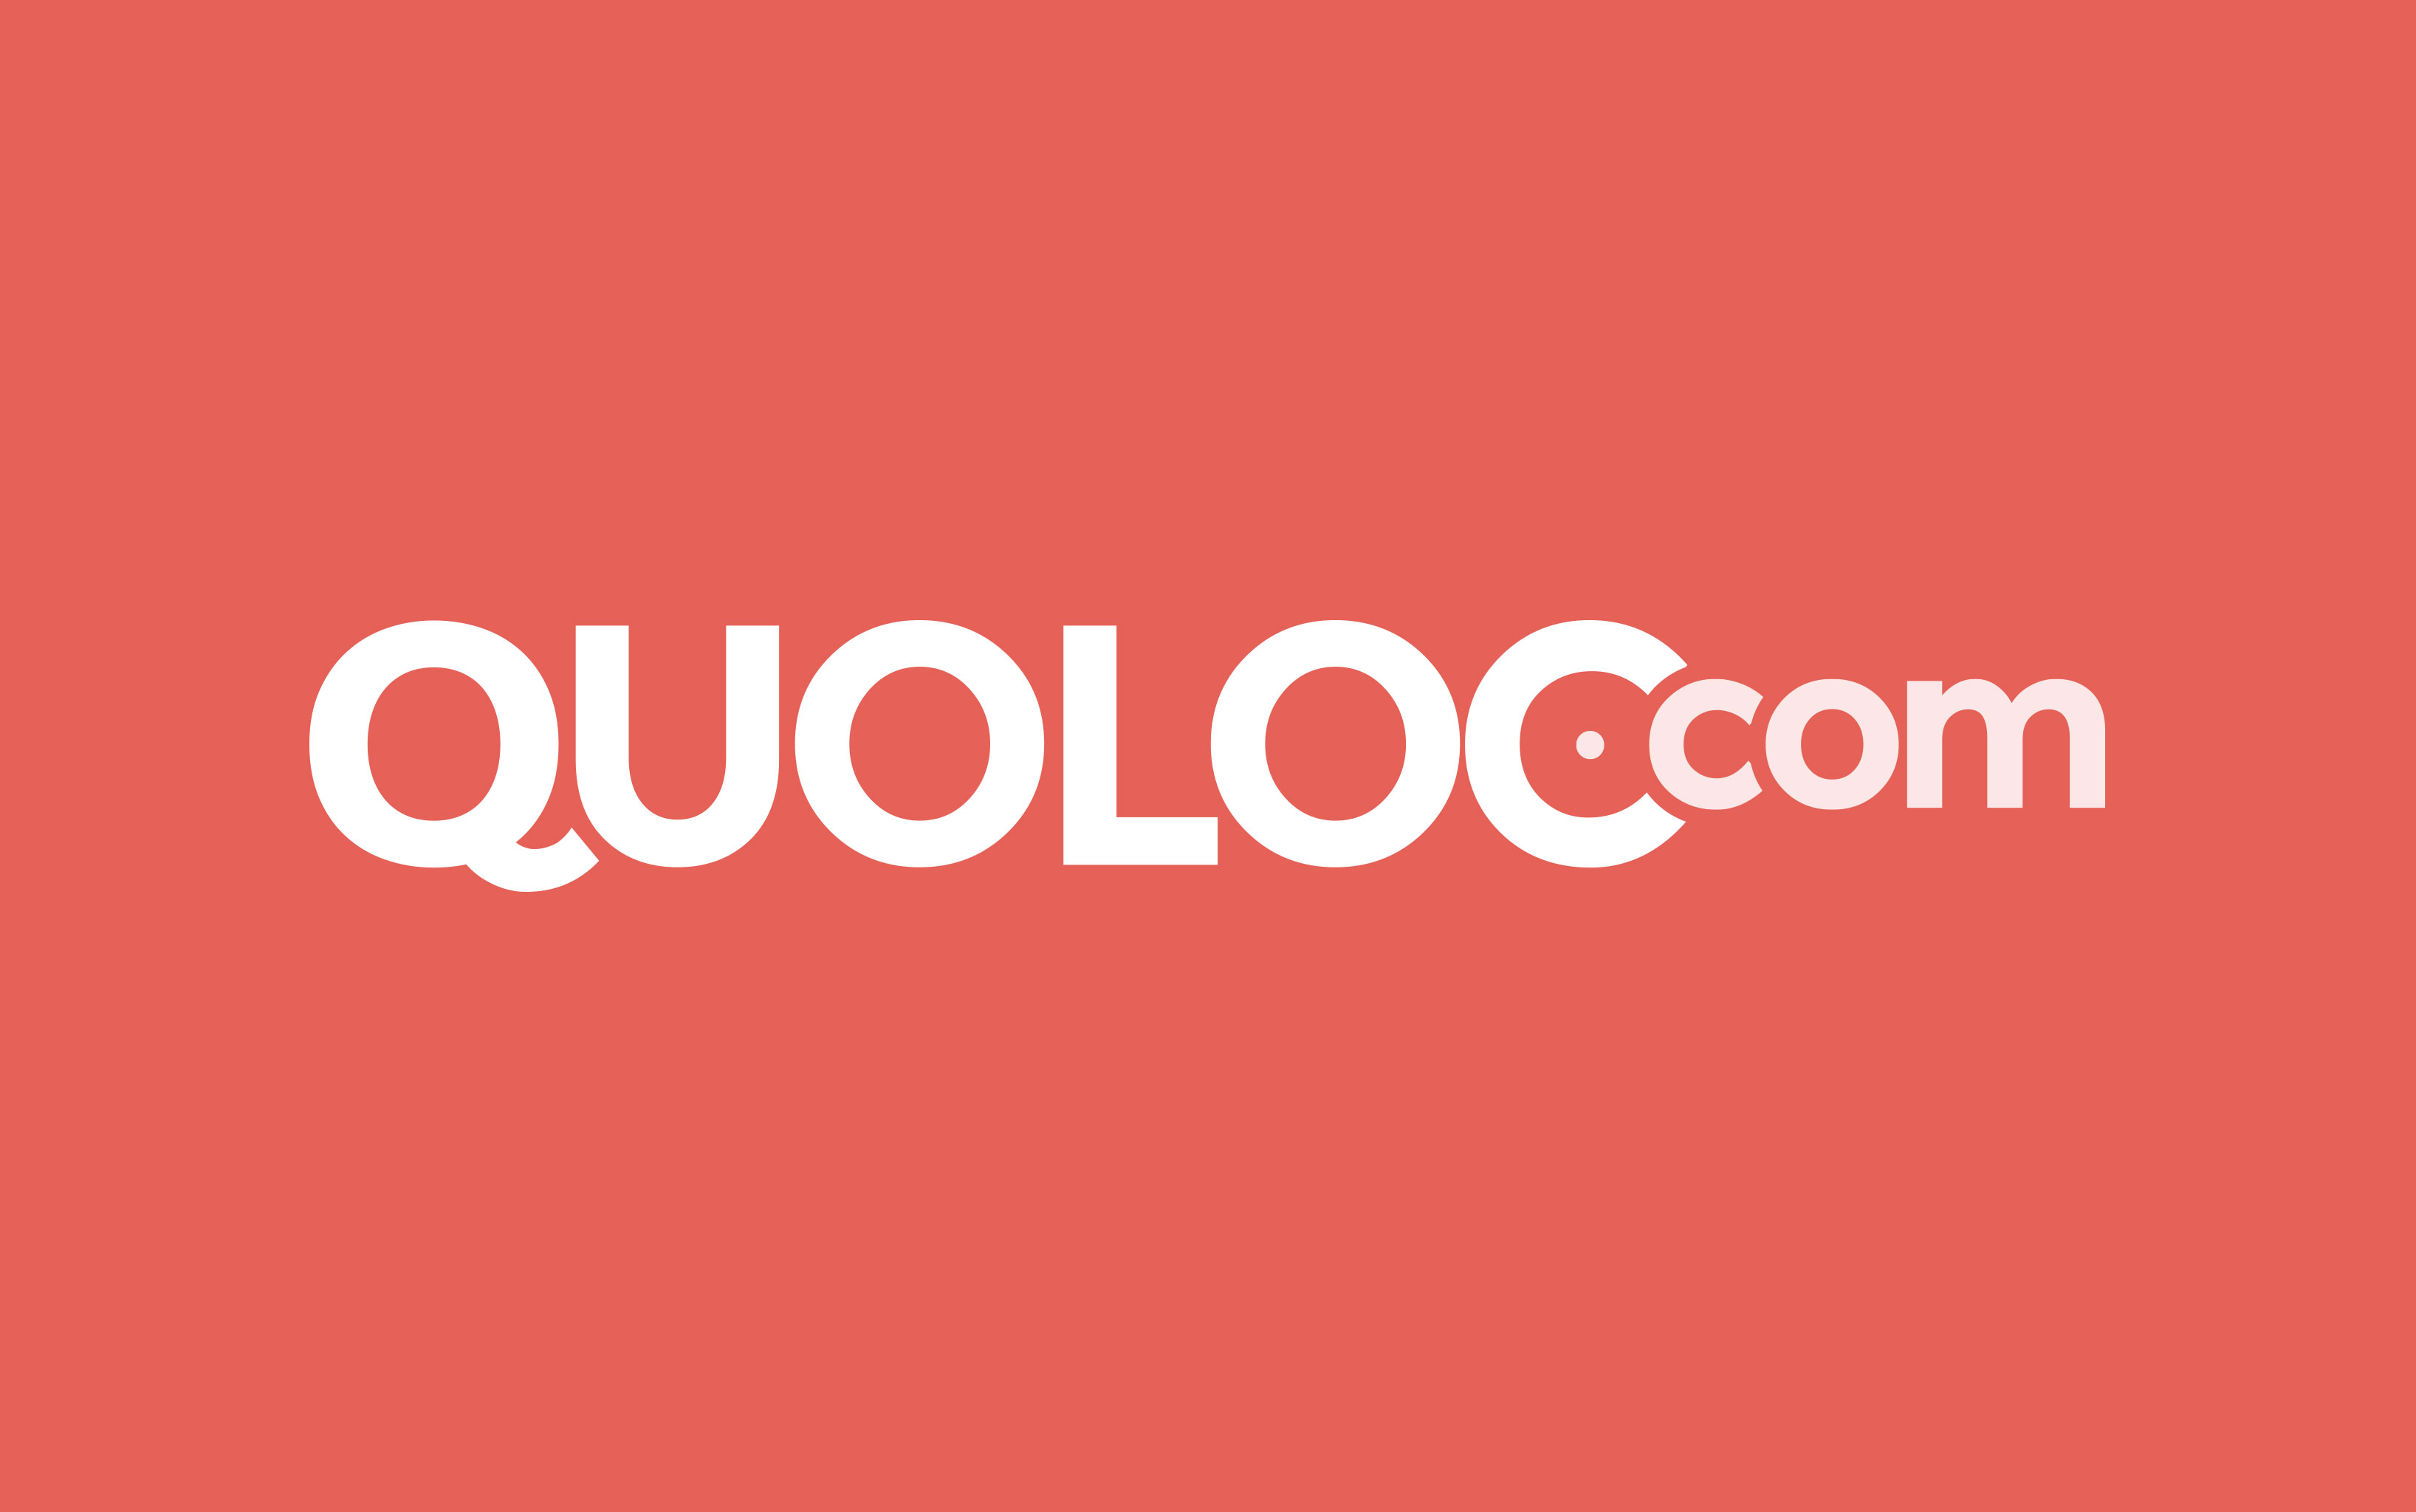 quoloc.com thumbnail room roommates flat apartment flatshare house sharing colocation colocataire logo nekson agence agency montreal design digital